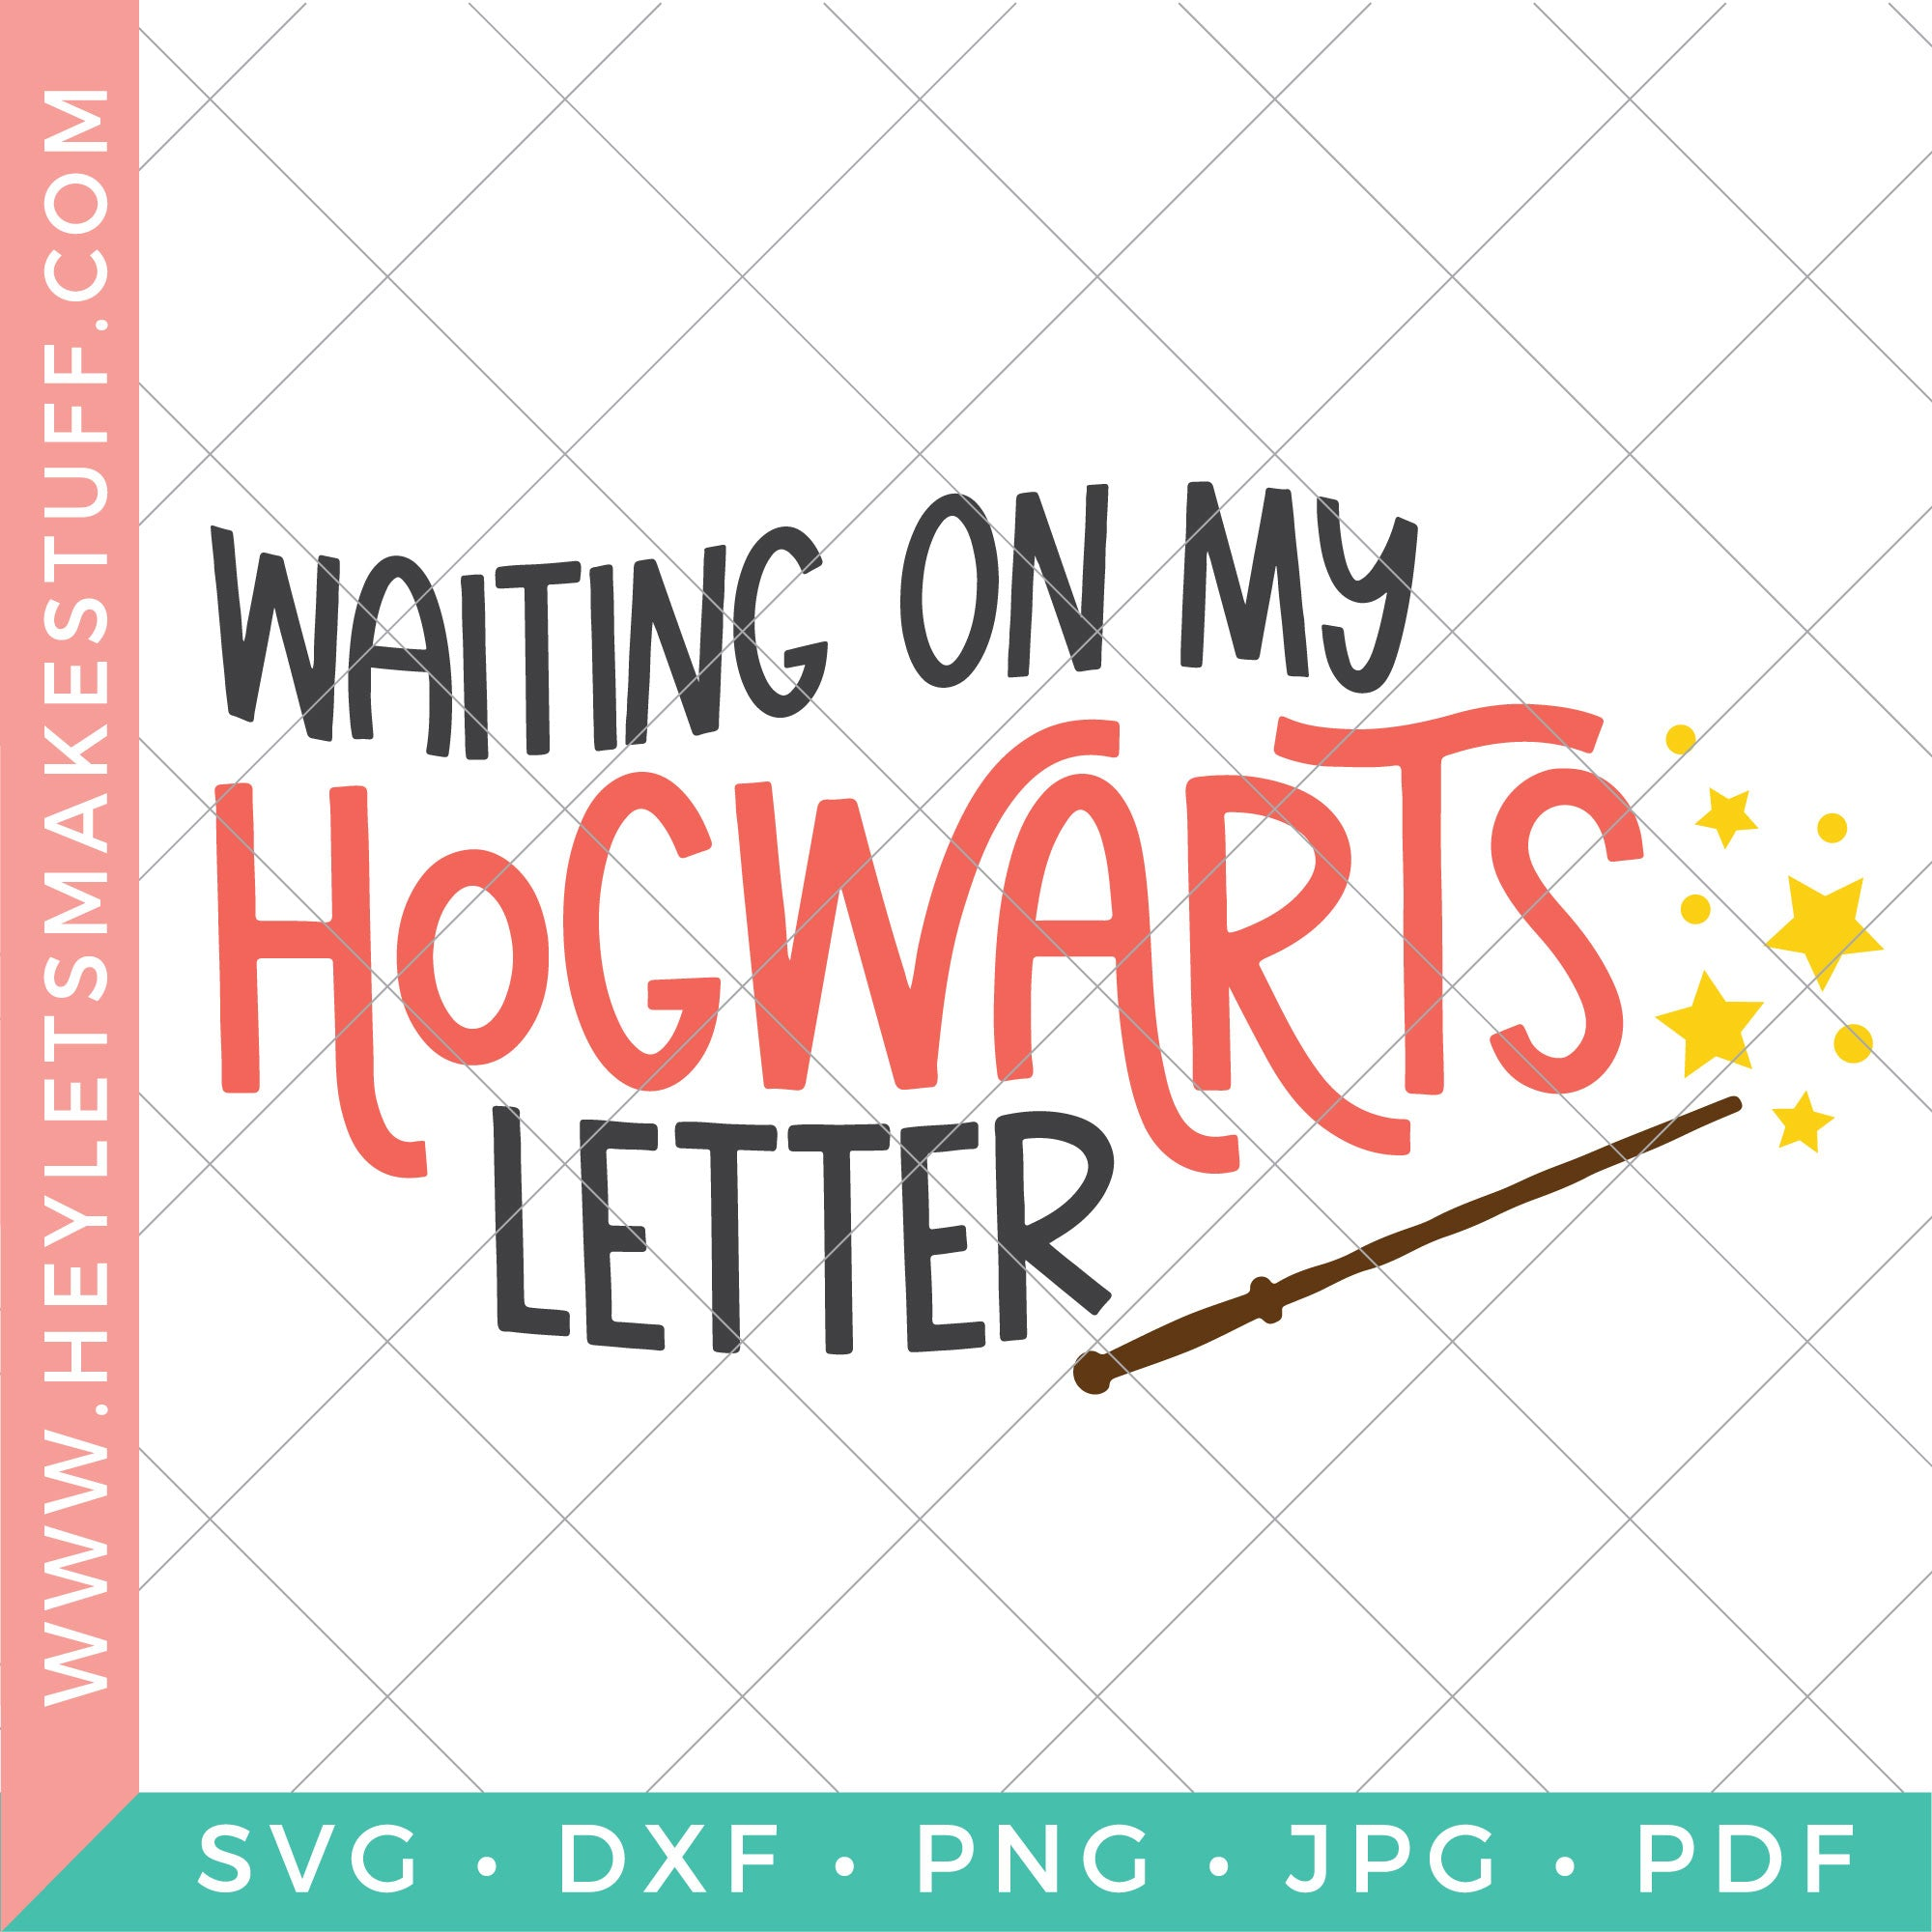 Waiting on My Hogwarts Letter